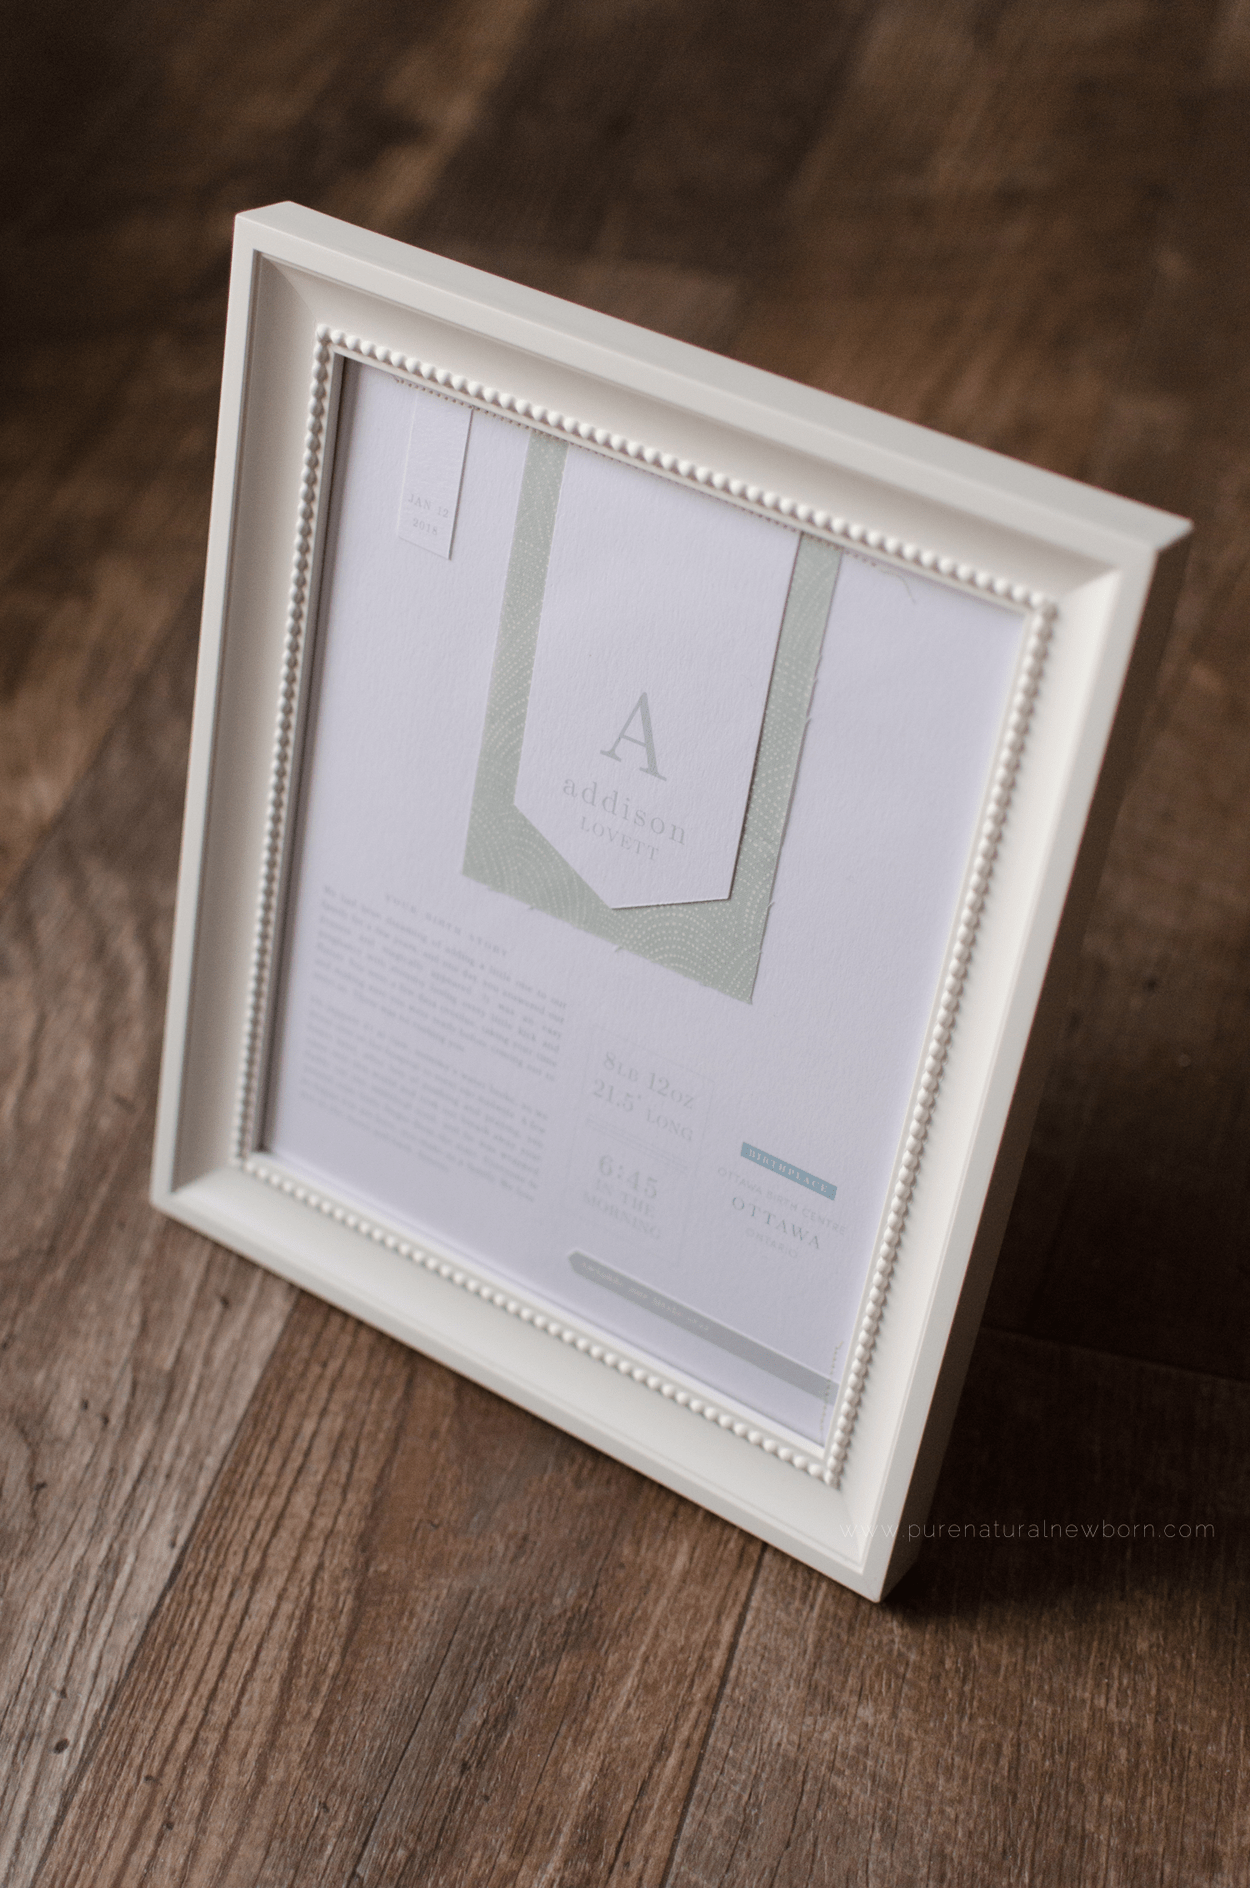 studio-decor-details-lafabere-baby-framed-birth-announcement-nursery-prints-pure-natural-newborn-photography-ottawa